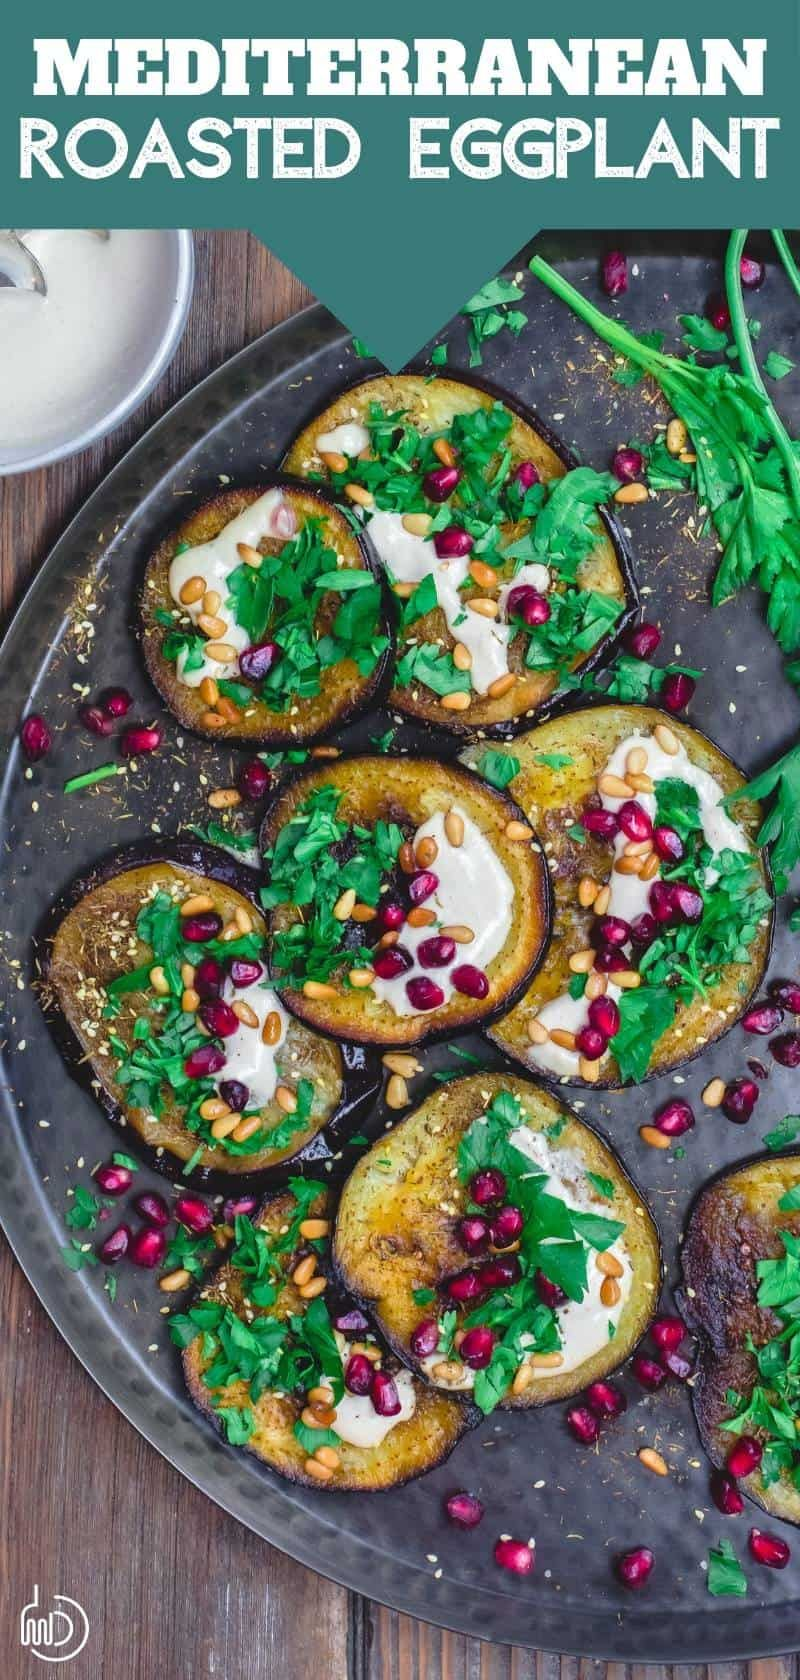 Mediterranean Roasted Eggplant Recipe with Pomegranates and Tahini Want to make the best, crispy, tender roasted eggplant? This recipe is it! Grab our tips & learn how to dress up roasted eggplant with delicious Mediterranean flavors!